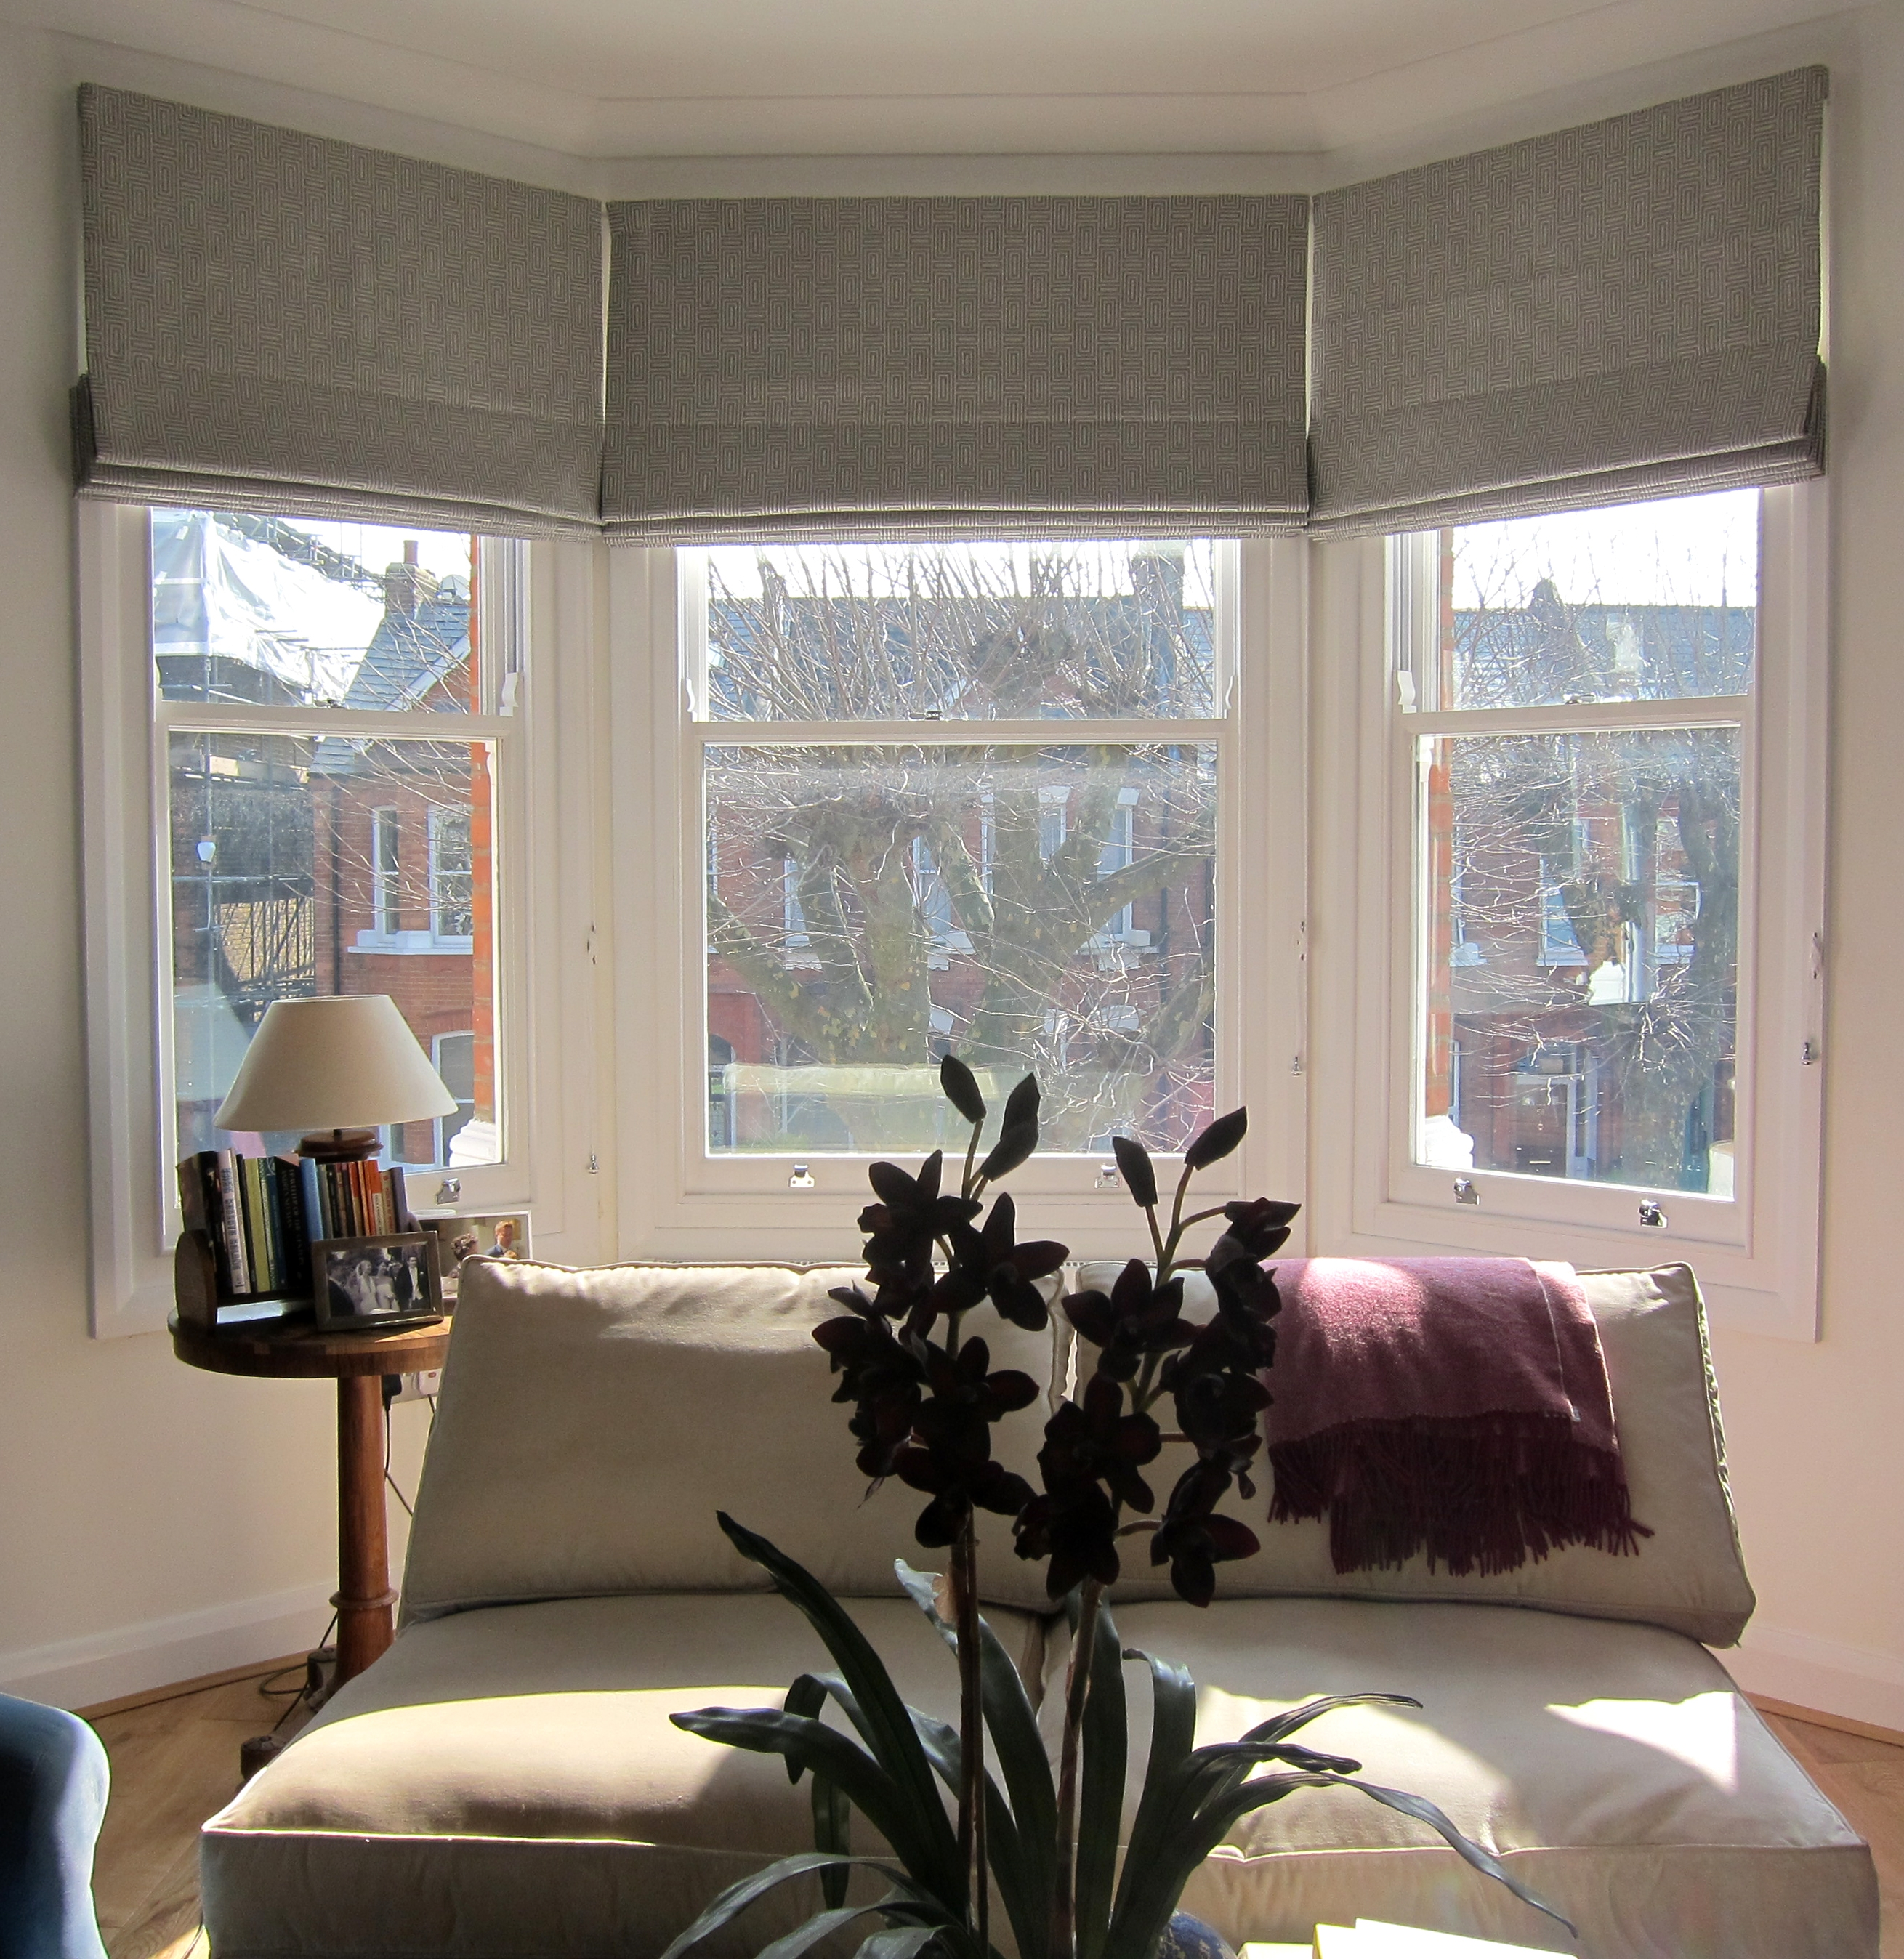 Geometric Patterned Roman Blinds In A Bay Window Could Work In Intended For Front Room Blinds (View 6 of 15)